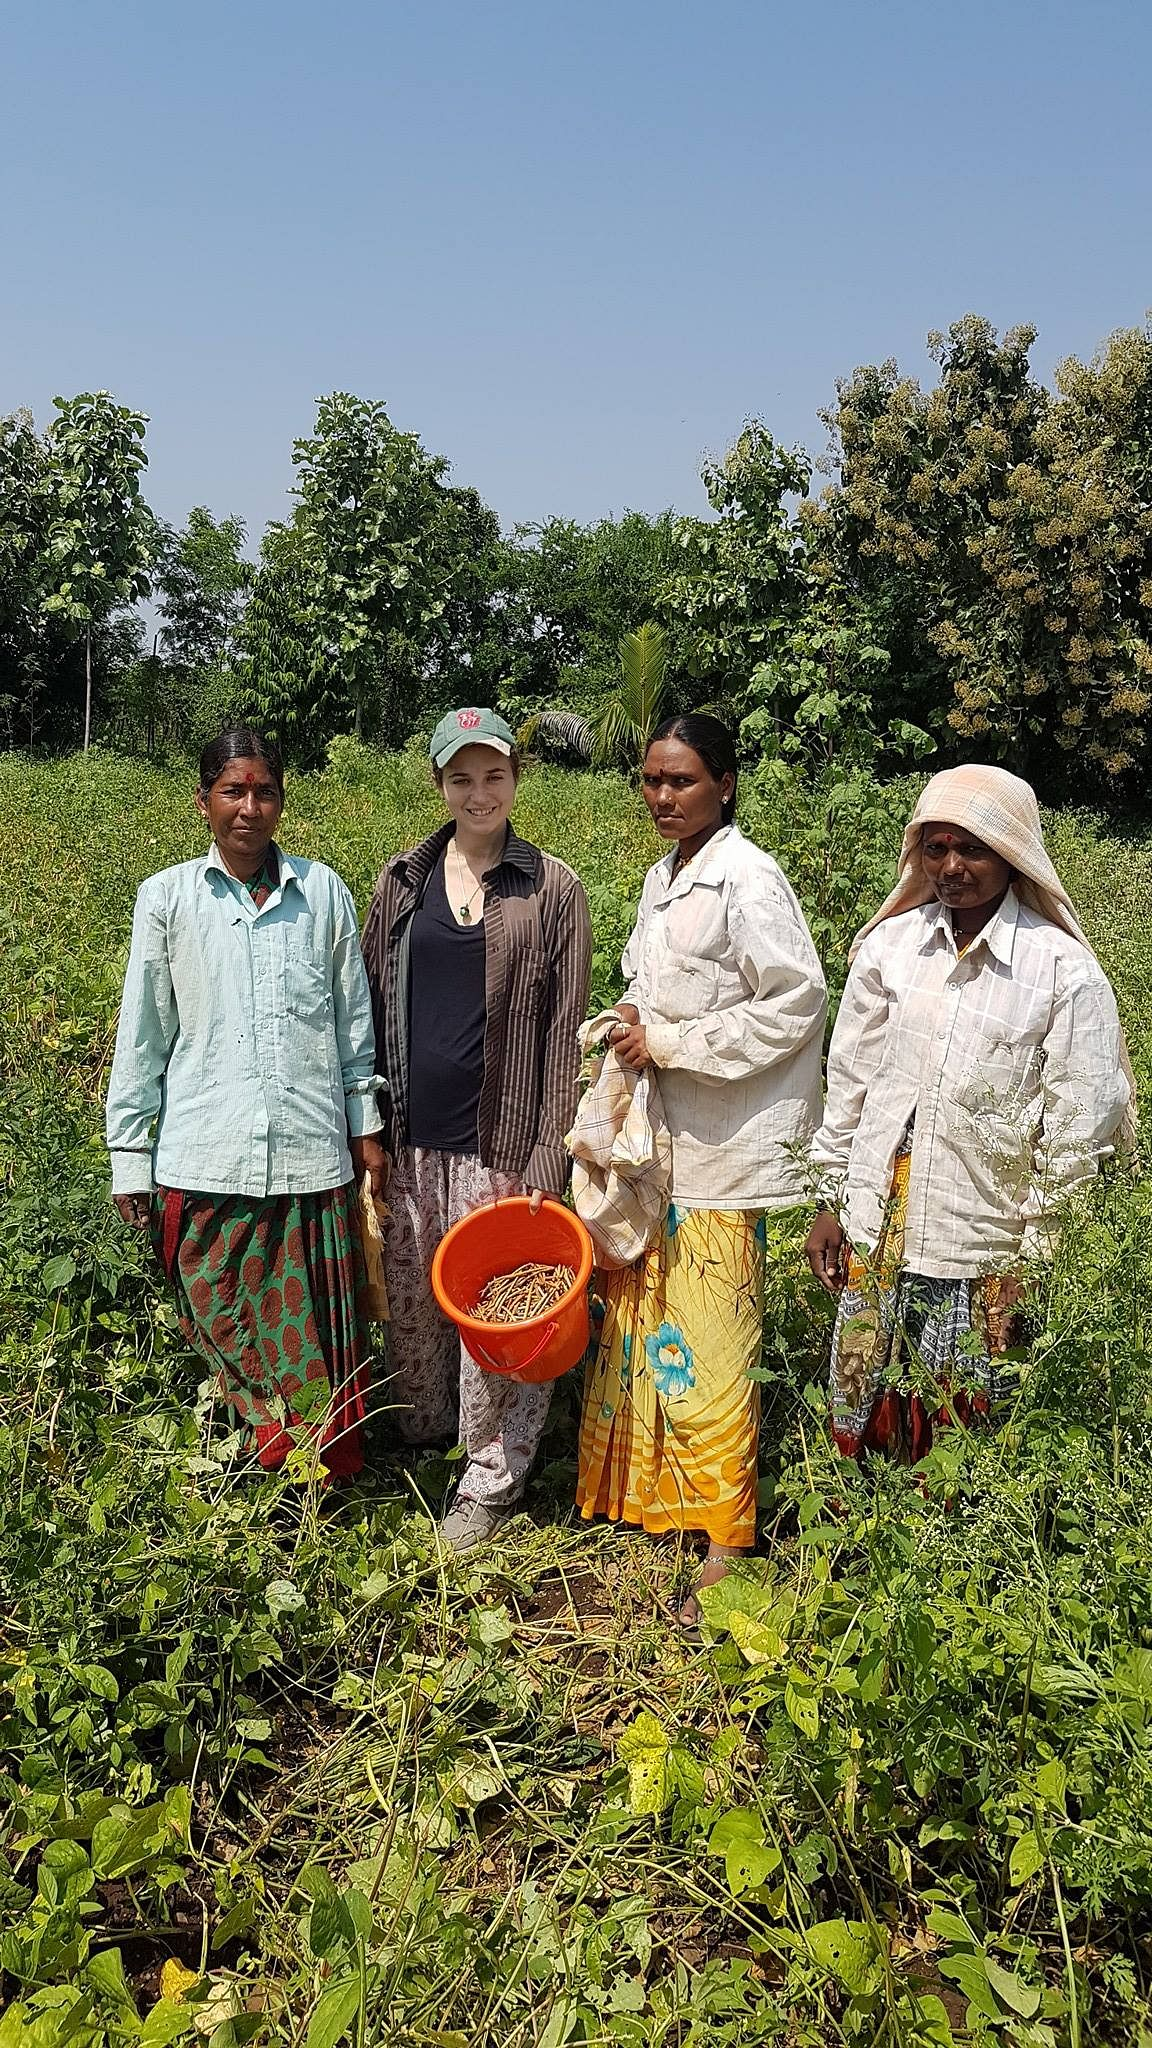 A lady from Europe at the farm with farm attendants, is one of many such who come to learn and help in farming activities